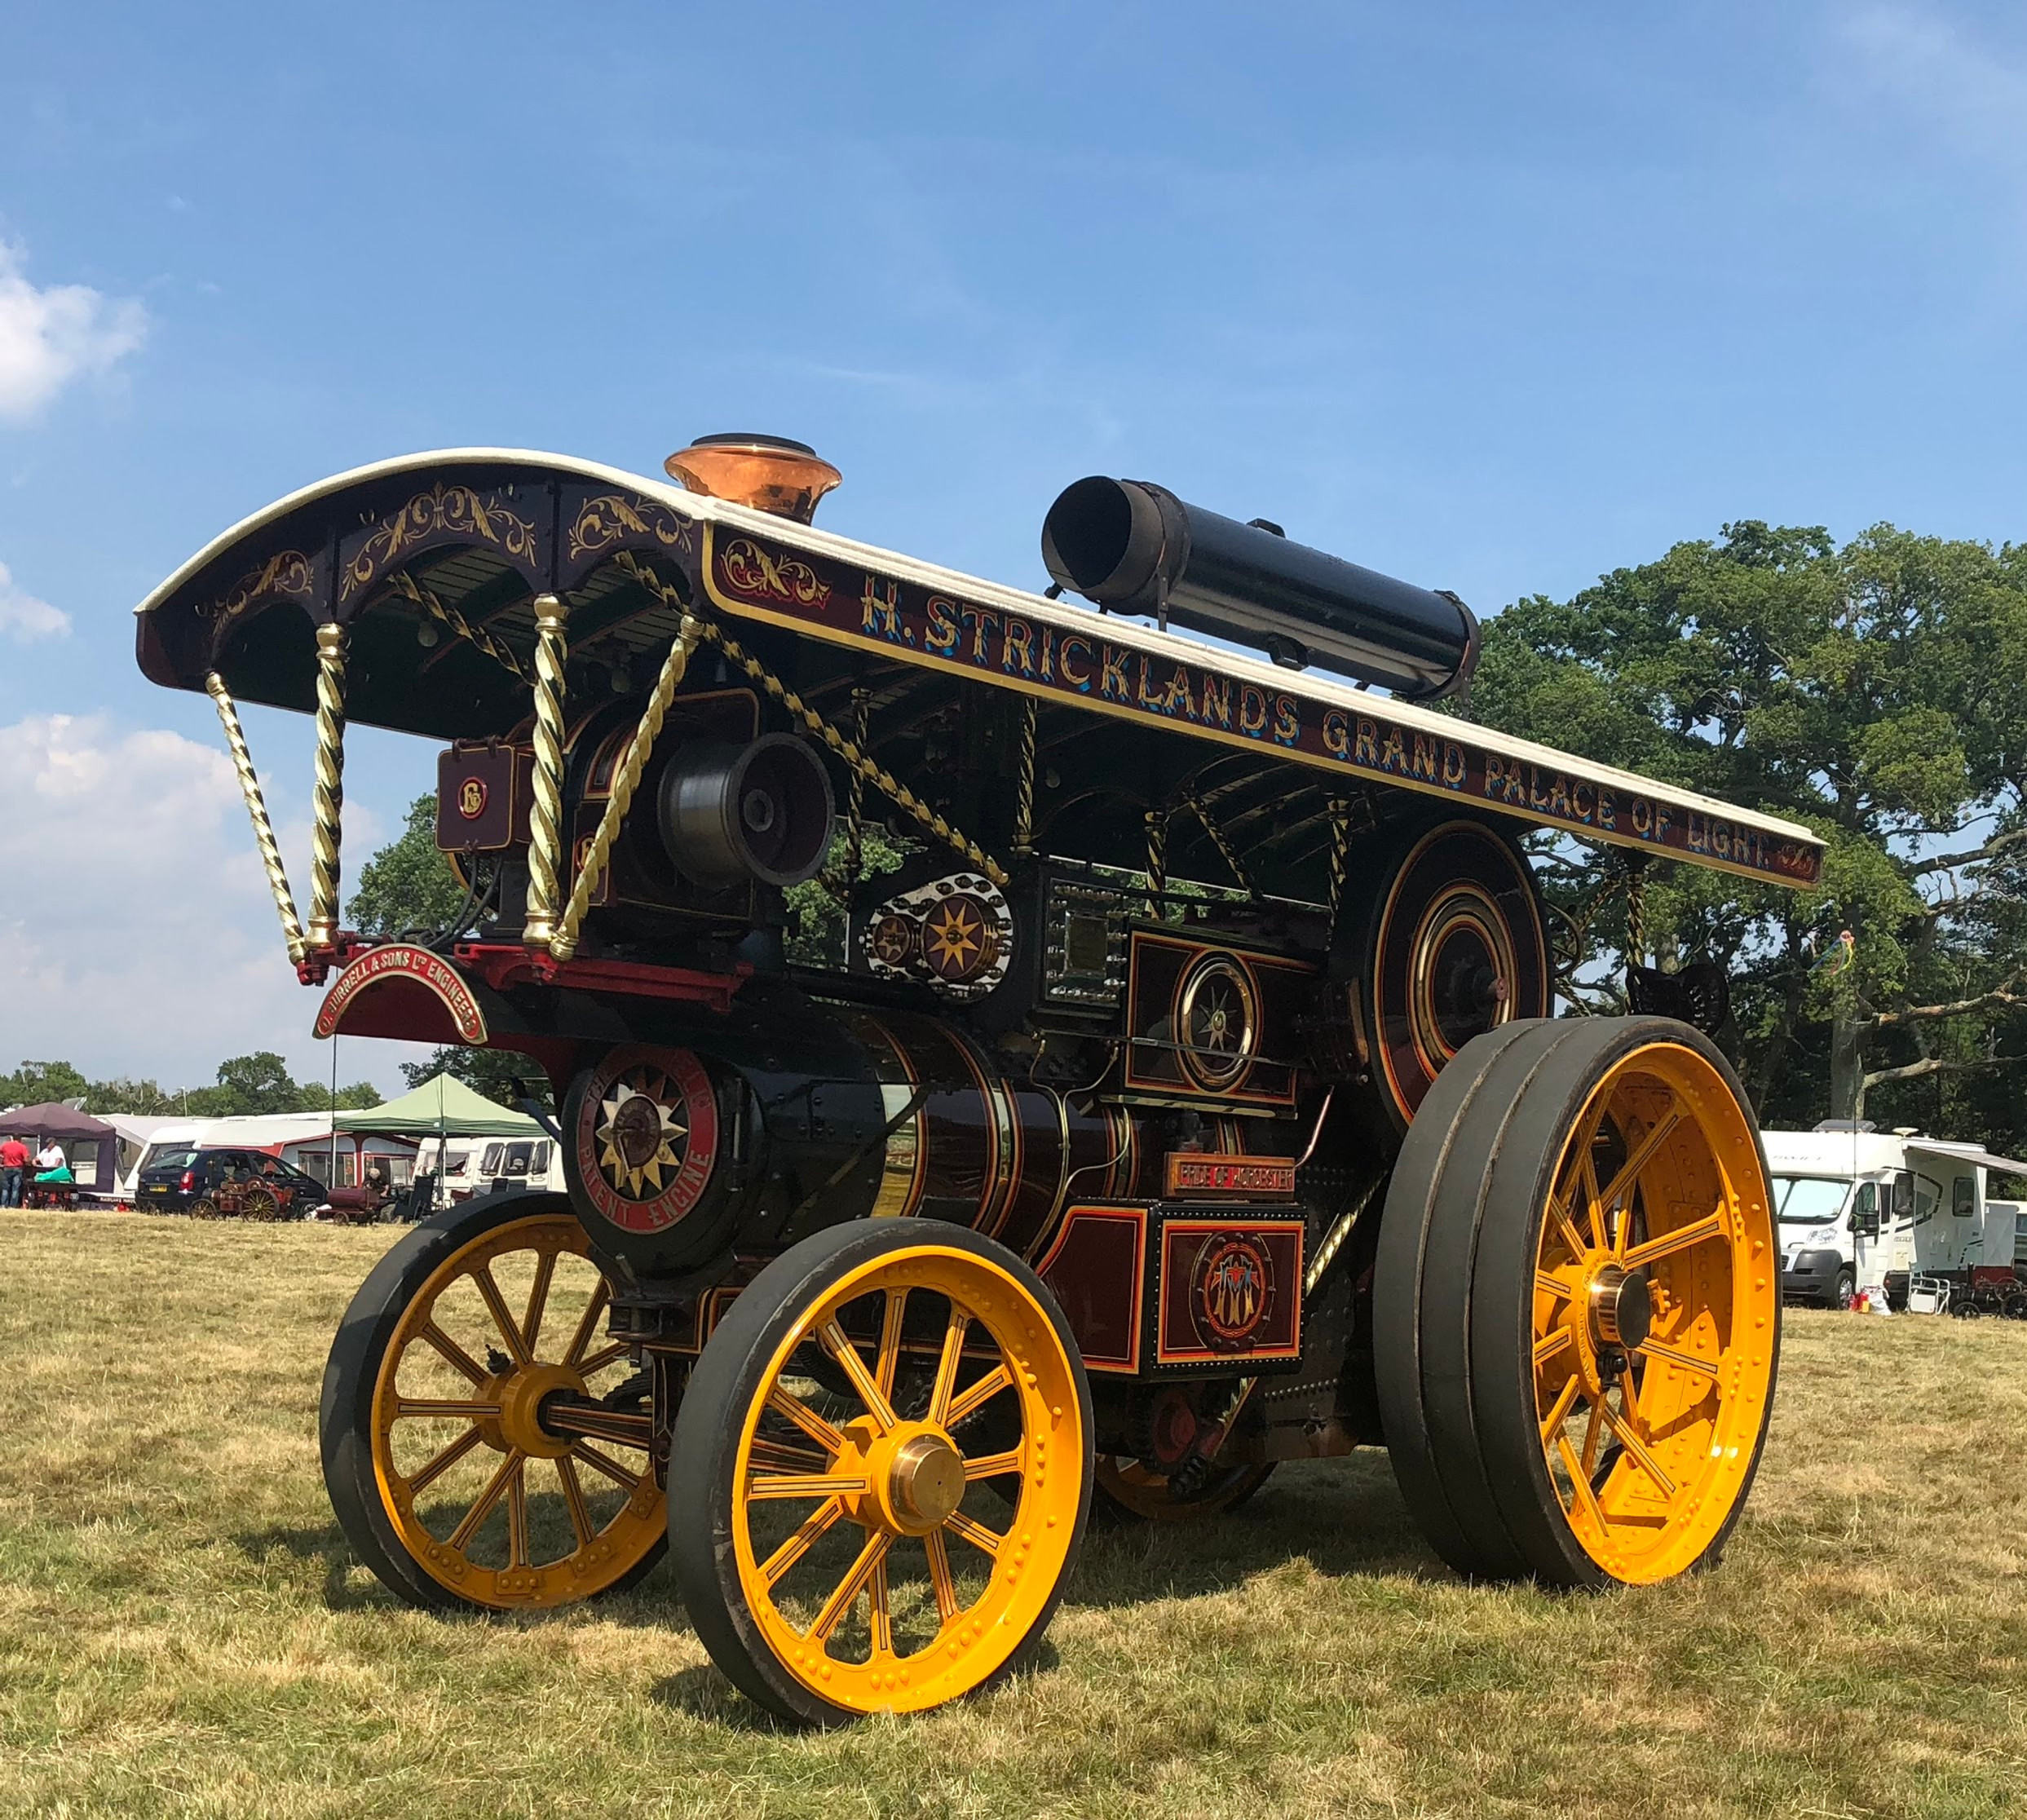 (c) Sussexsteamrally.co.uk